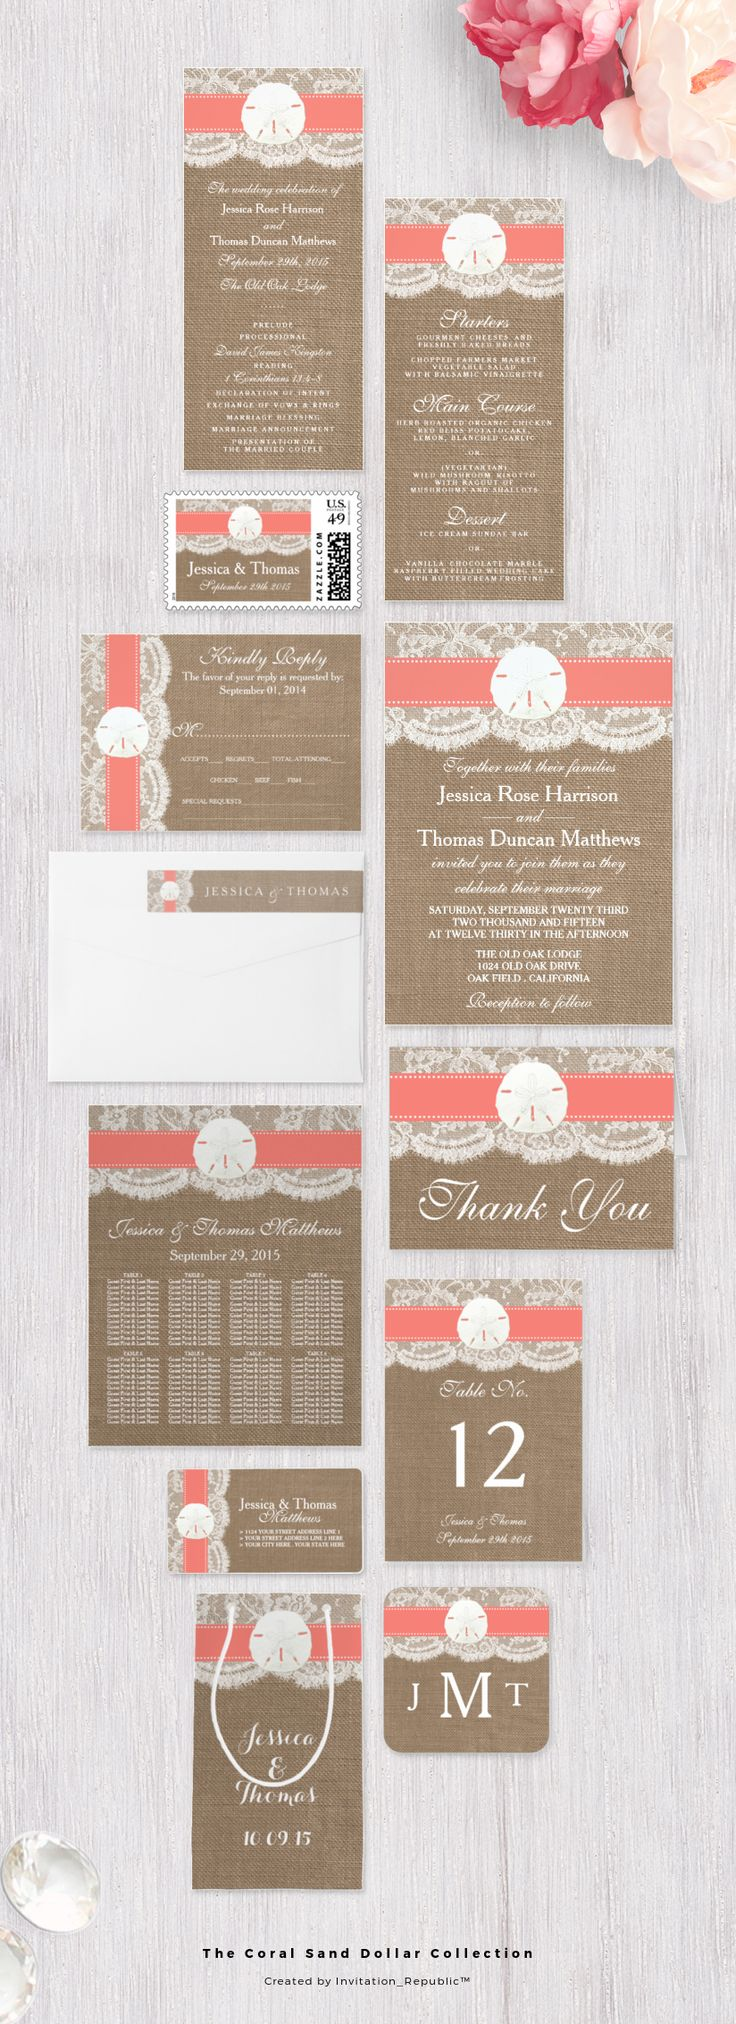 Coral Sand Dollar Beach Wedding Invitation Set Collection | Rustic Lace and Burlap